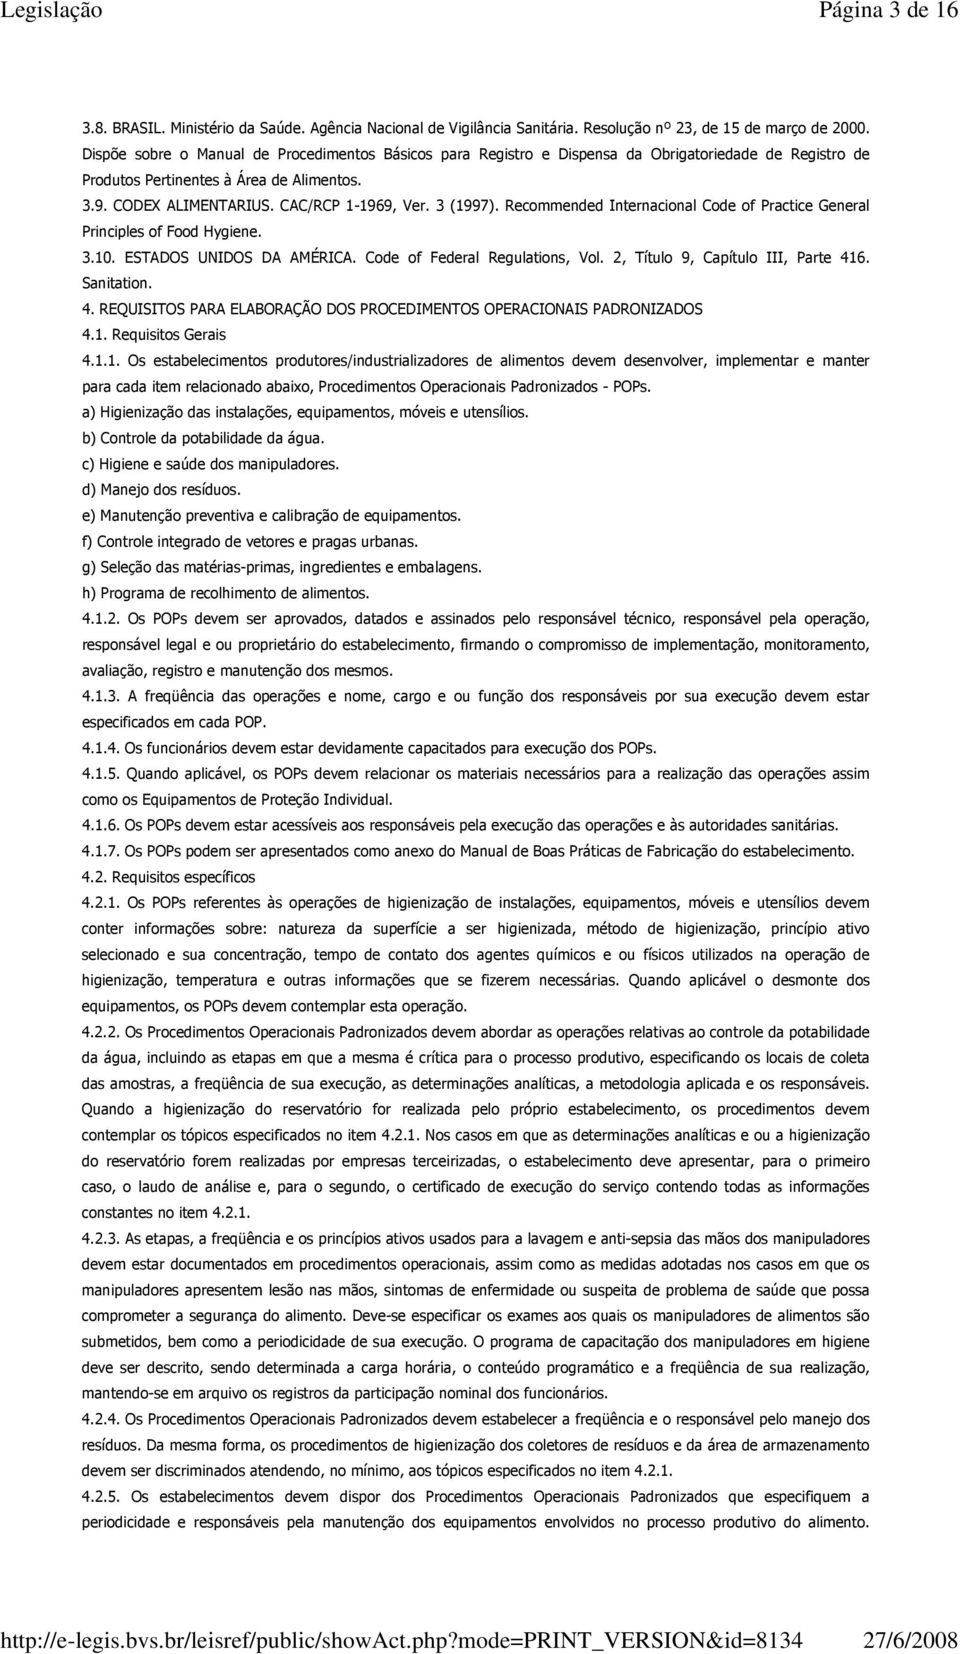 3 (1997). Recommended Internacional Code of Practice General Principles of Food Hygiene. 3.10. ESTADOS UNIDOS DA AMÉRICA. Code of Federal Regulations, Vol. 2, Título 9, Capítulo III, Parte 416.